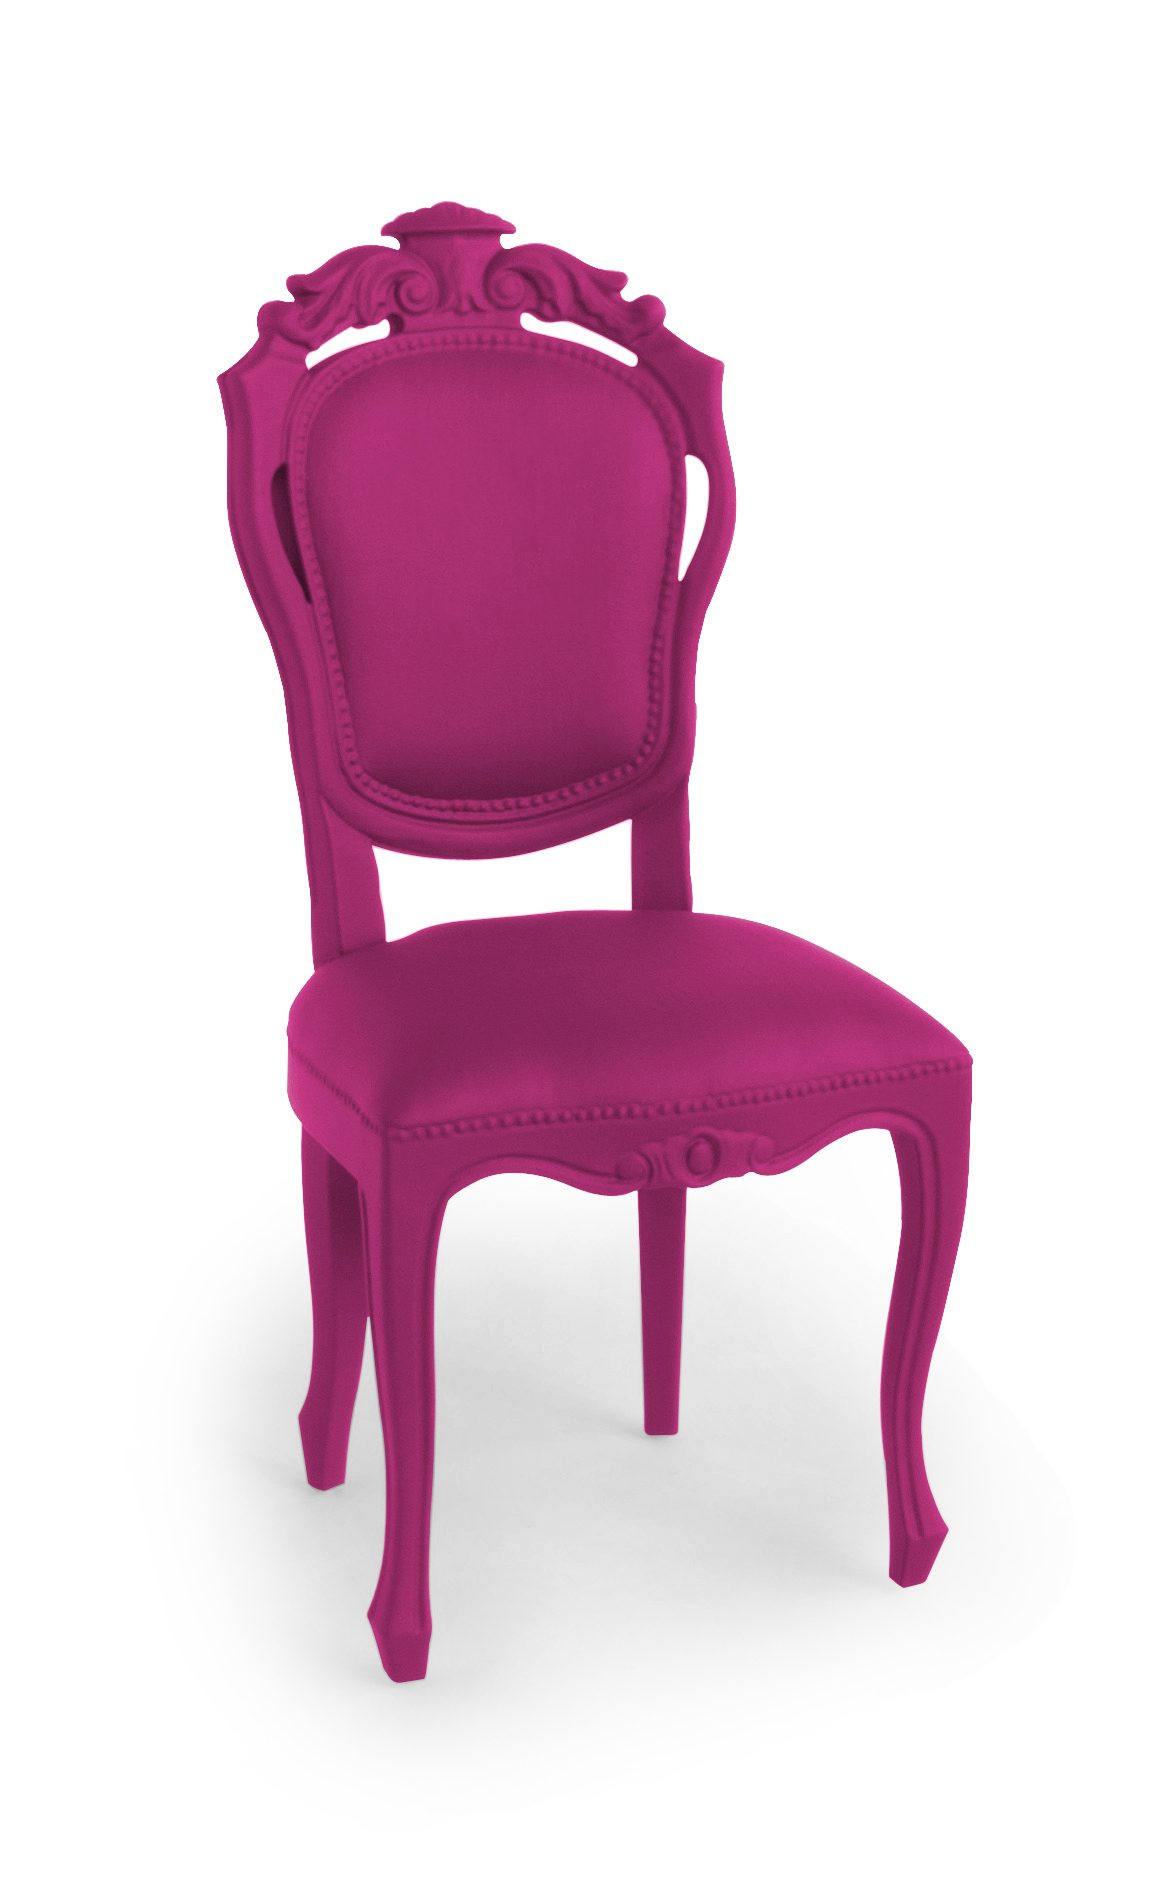 Jspr Plastic Fantastic Dining Chair Pink Roze Stoel Rubber